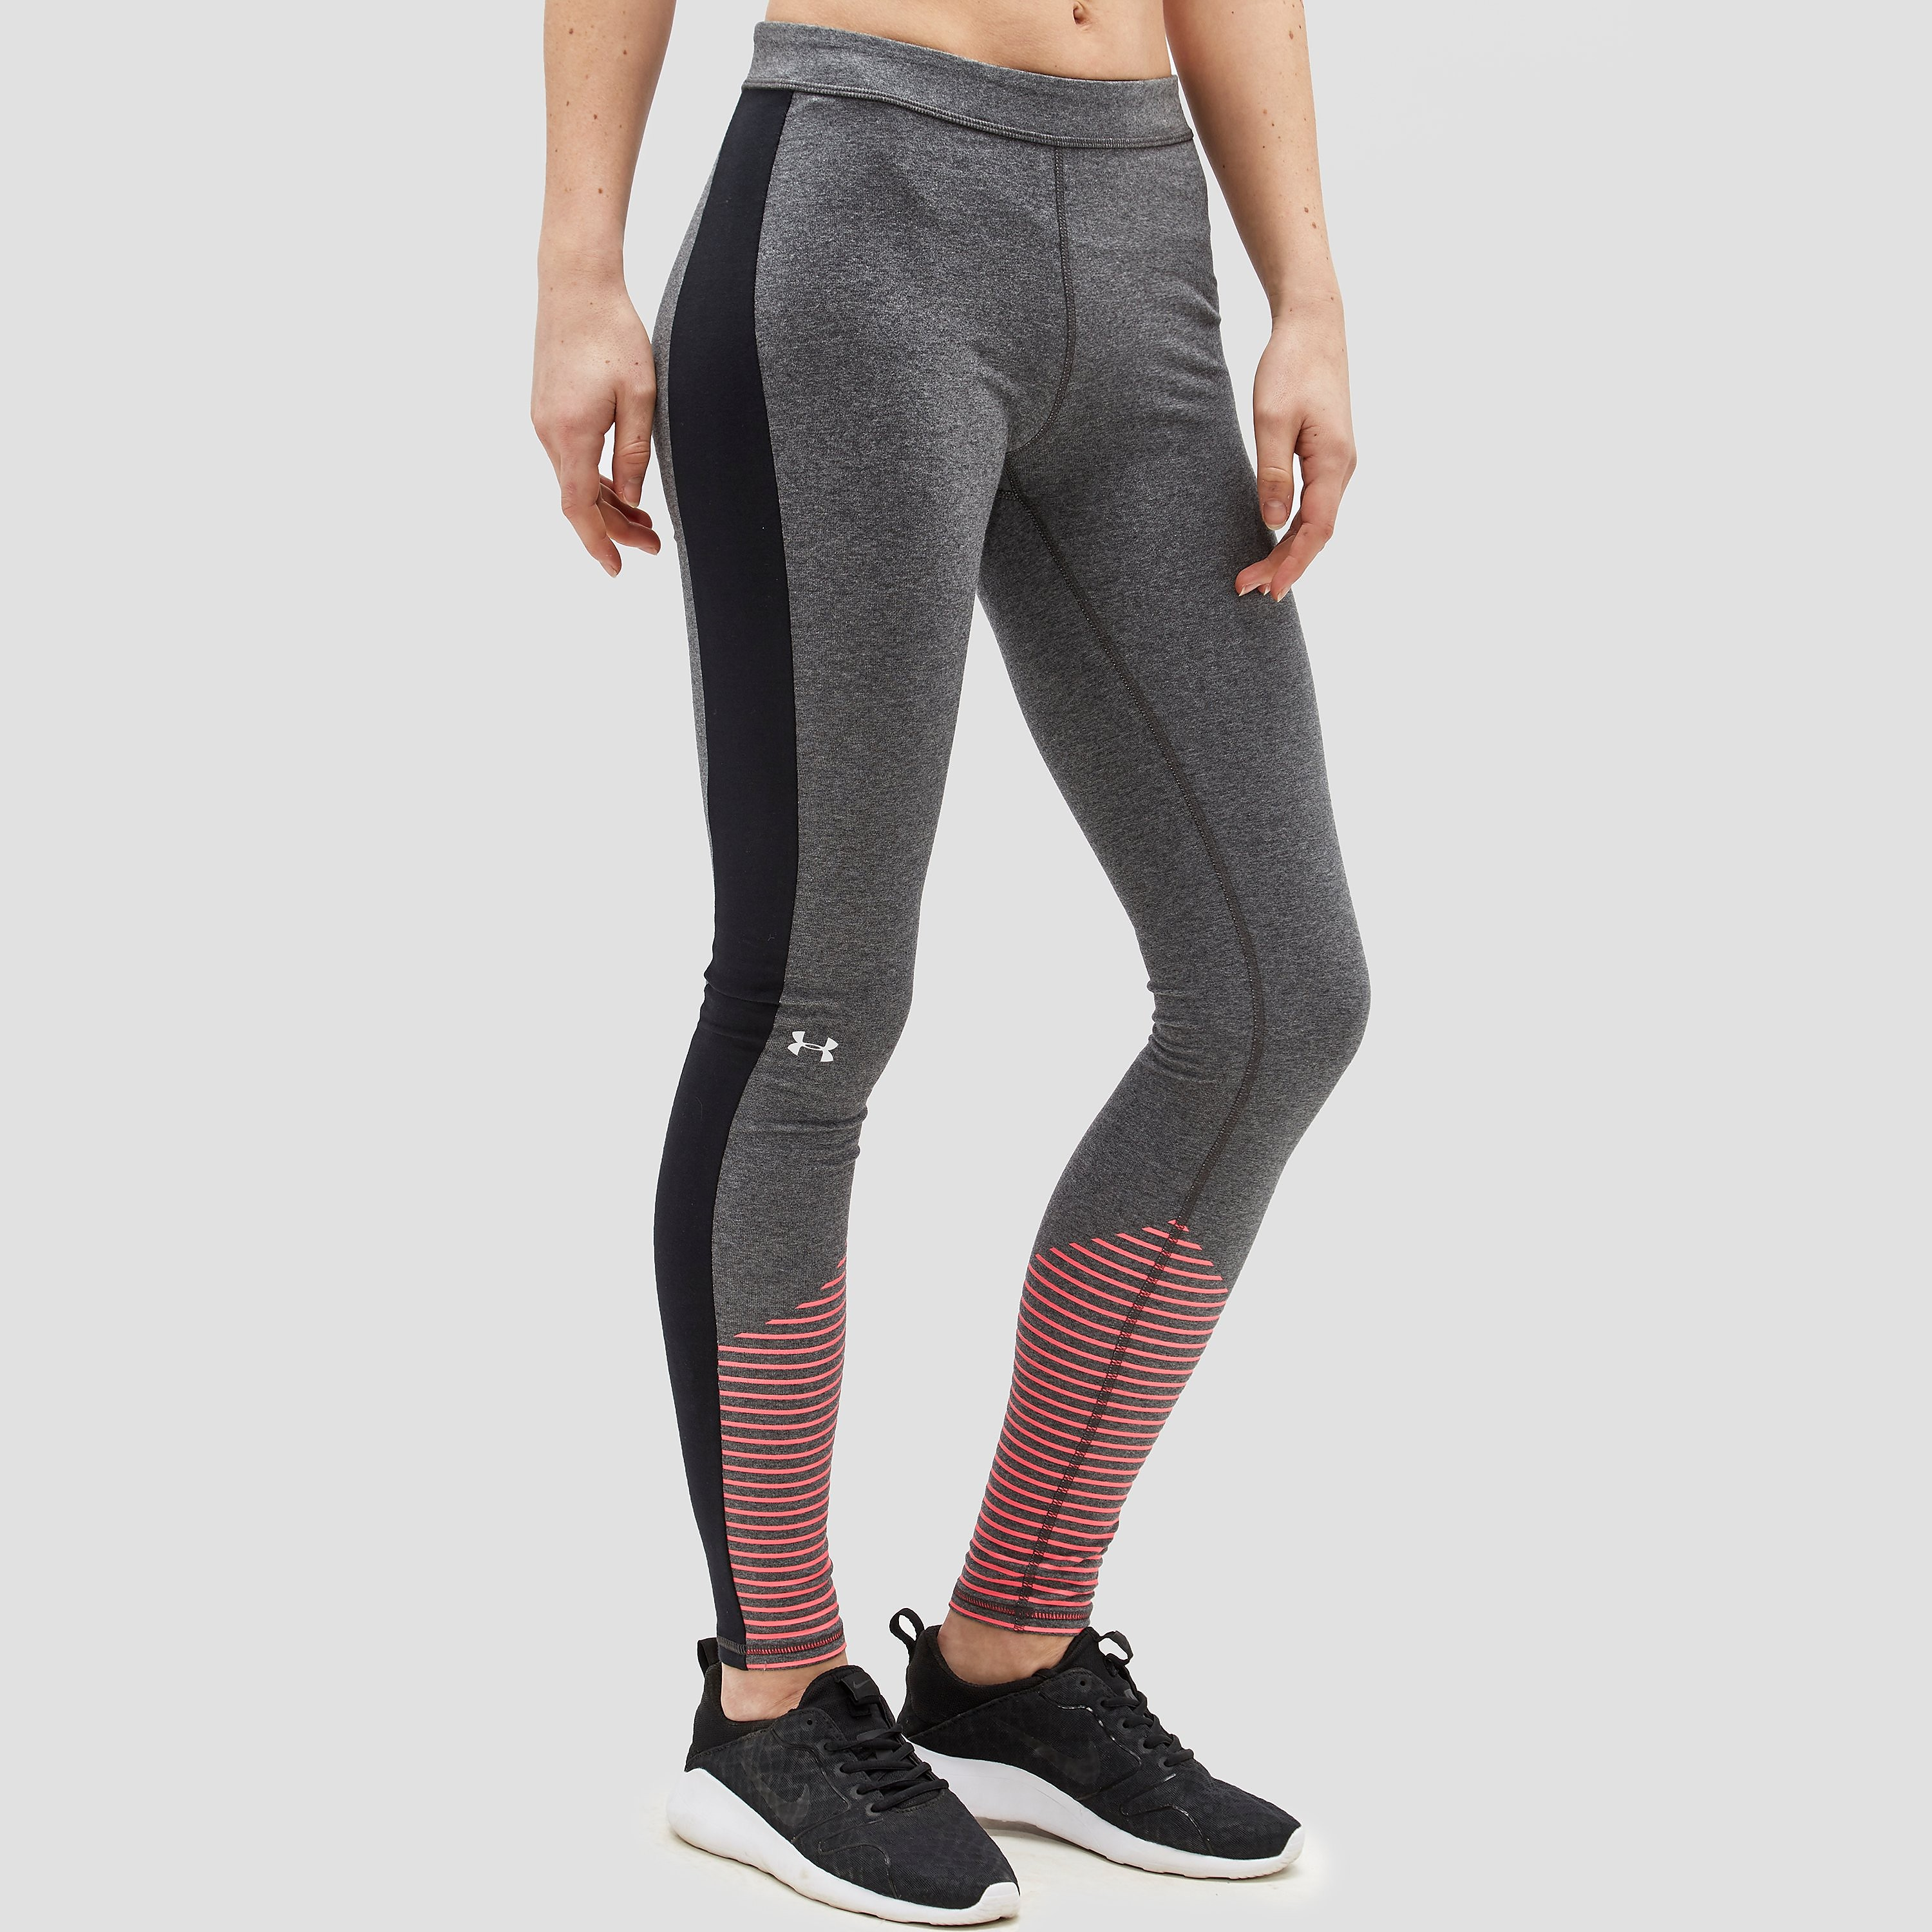 UNDER ARMOUR FAVORITE GRAPHIC TIGHT